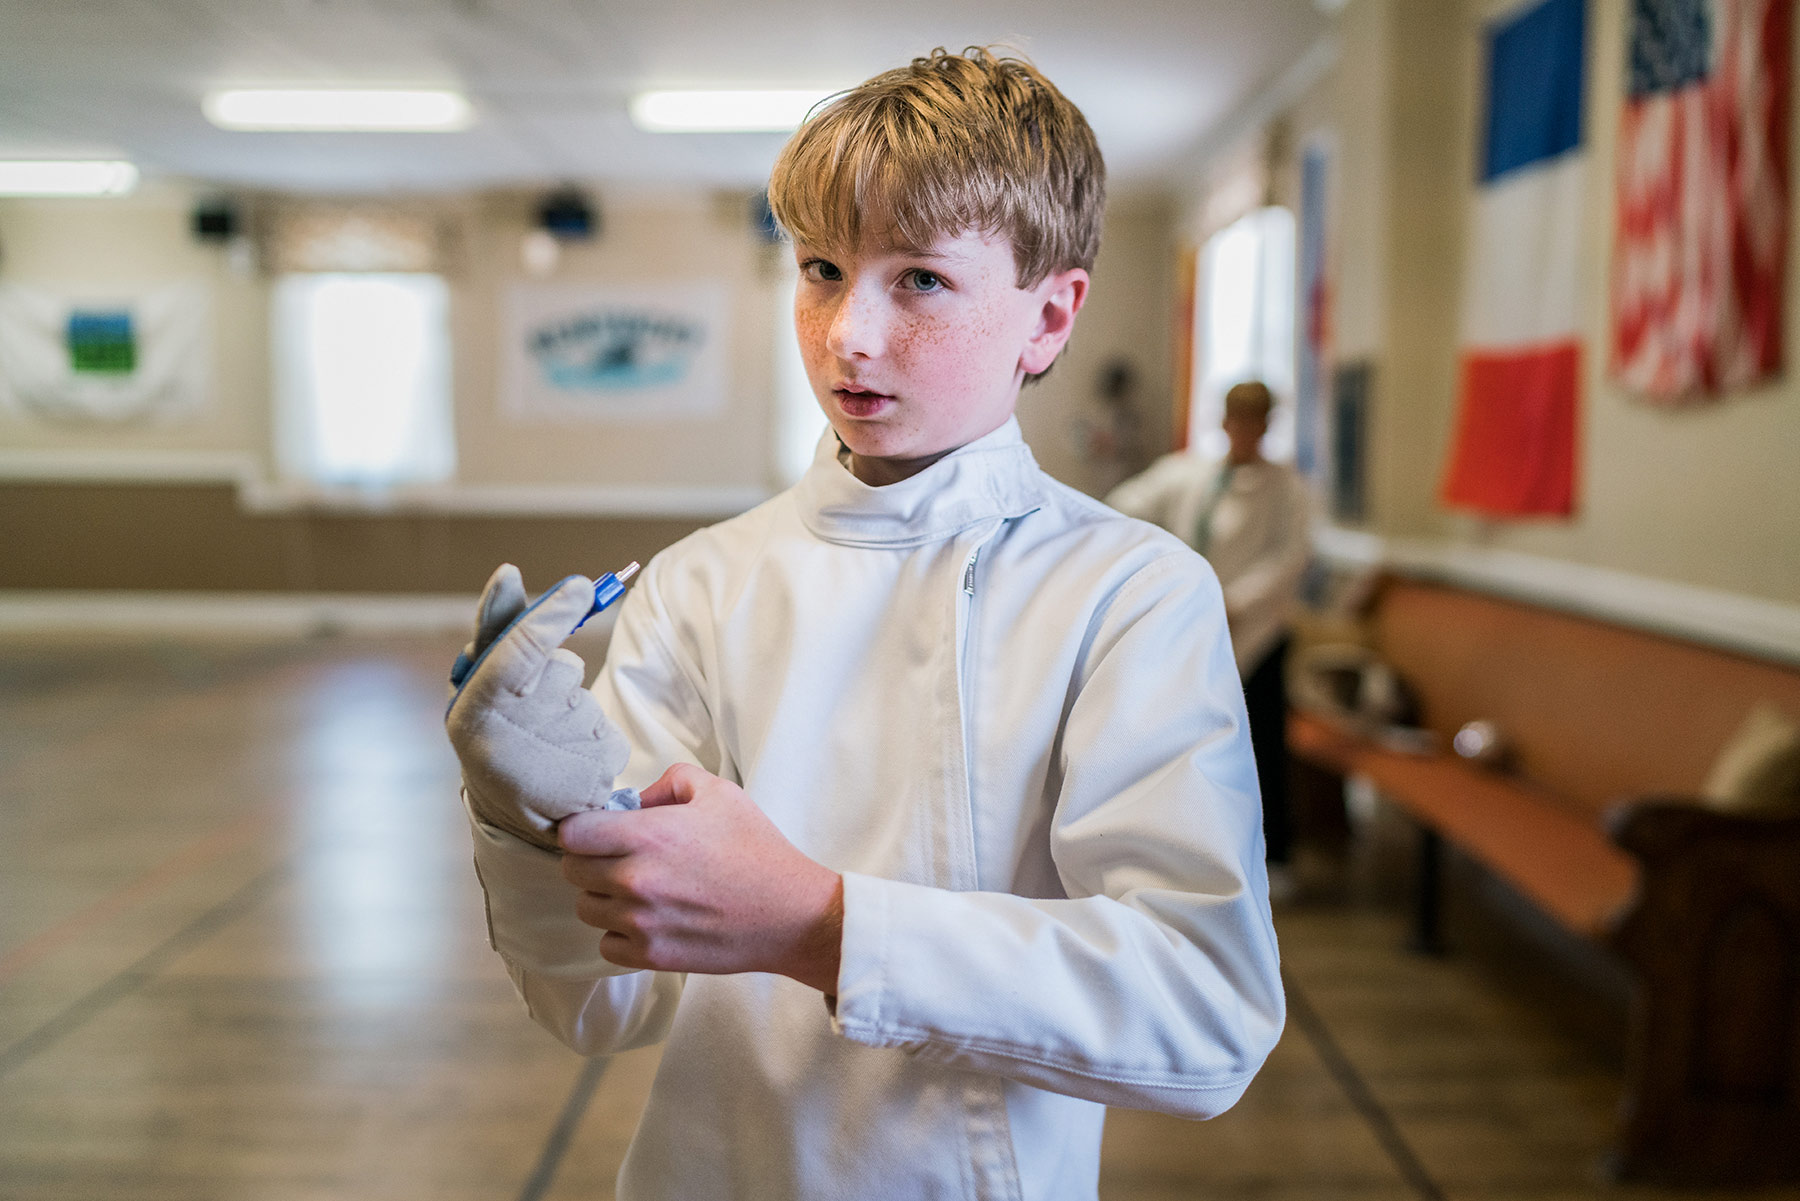 A-portrait-of-a-young-boy-wearing-a-fencing-outfit-standing-in-a-gymnasium